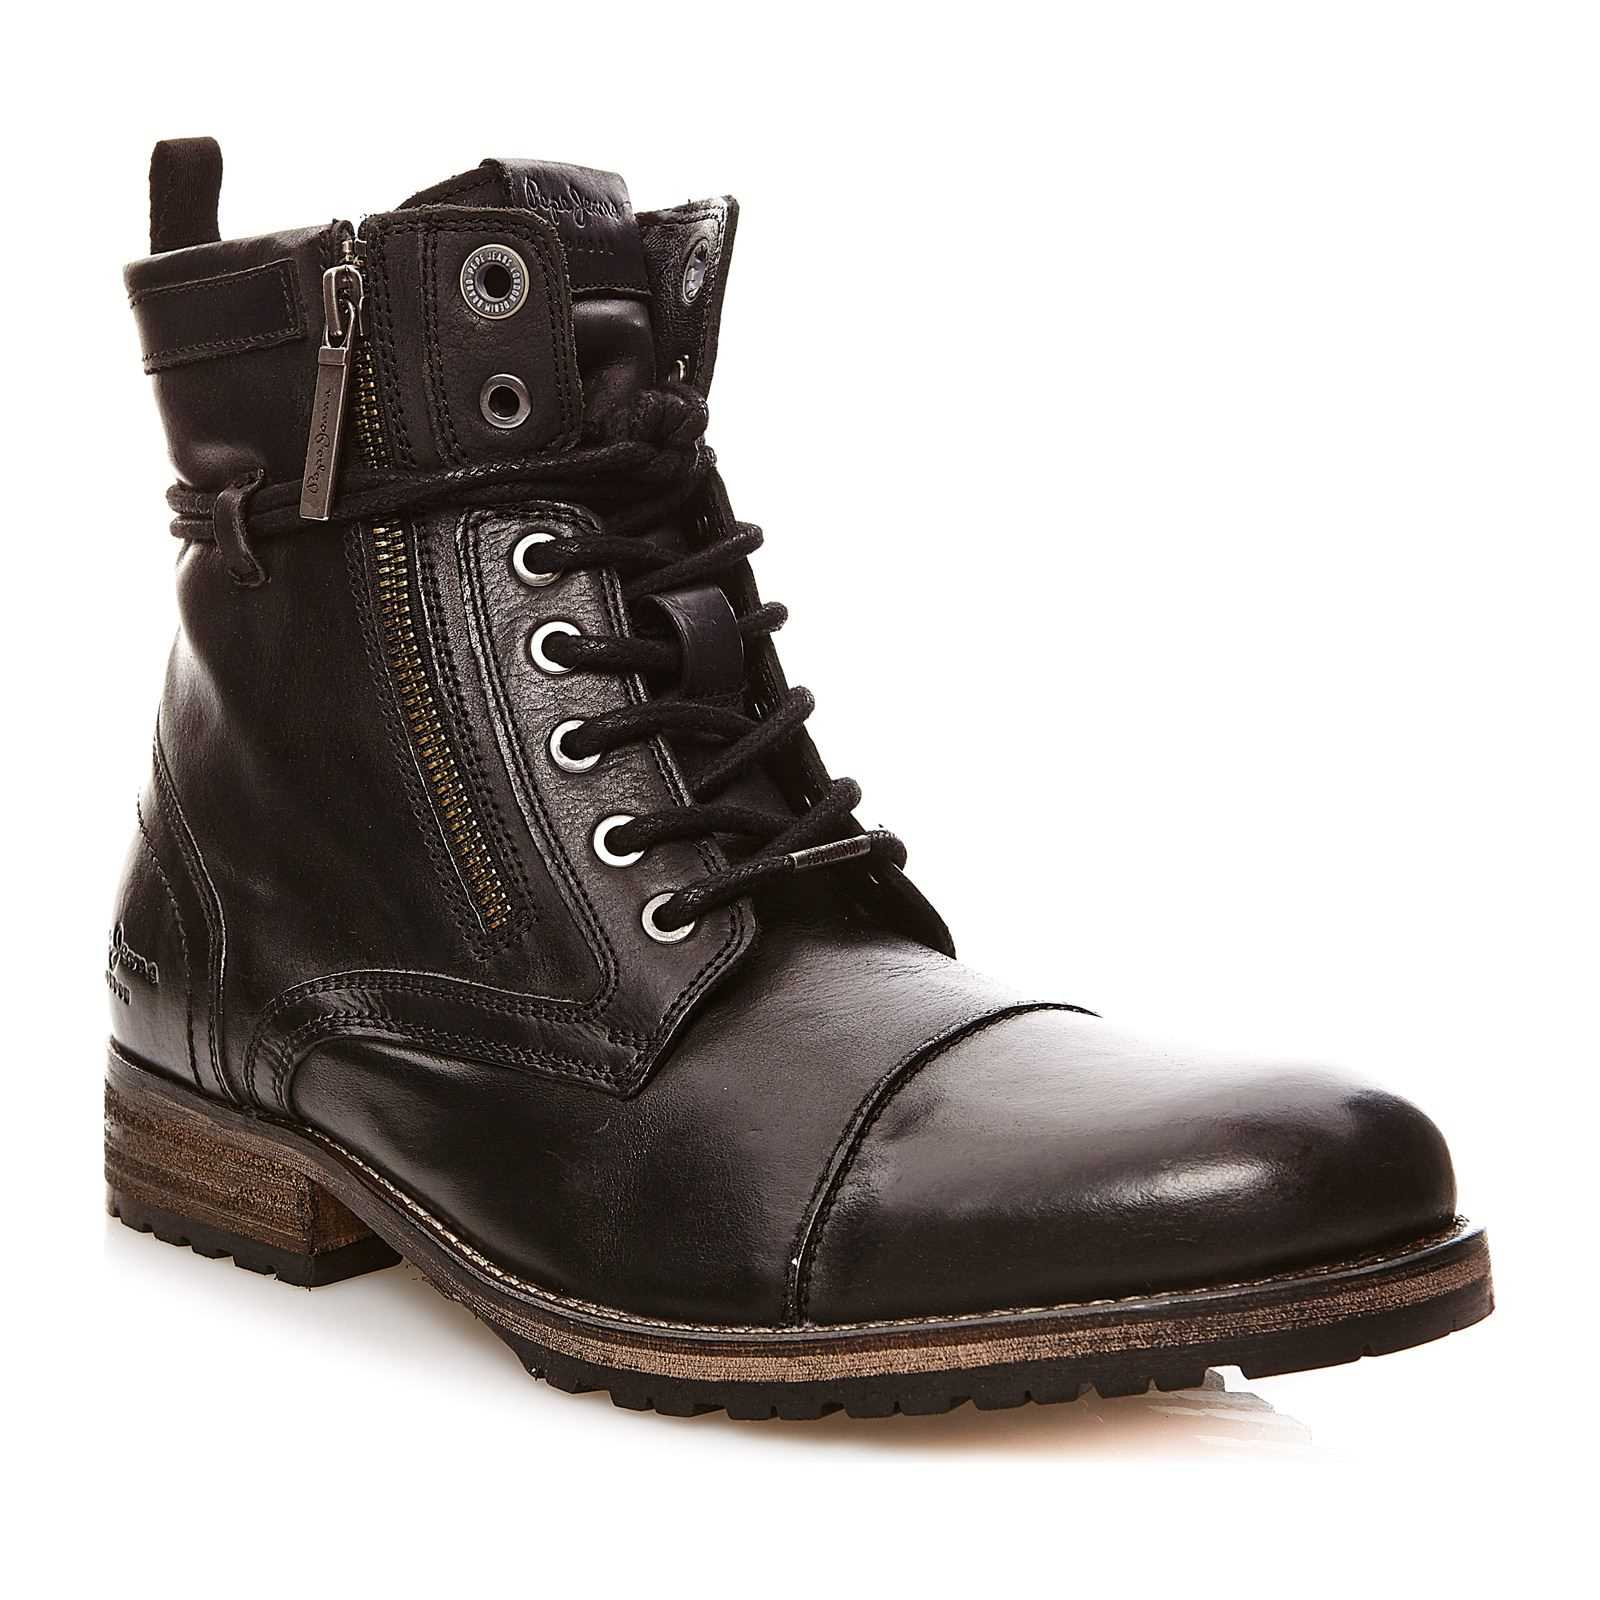 Pepe Jeans Footwear Melting Zipper New - Boots - noir